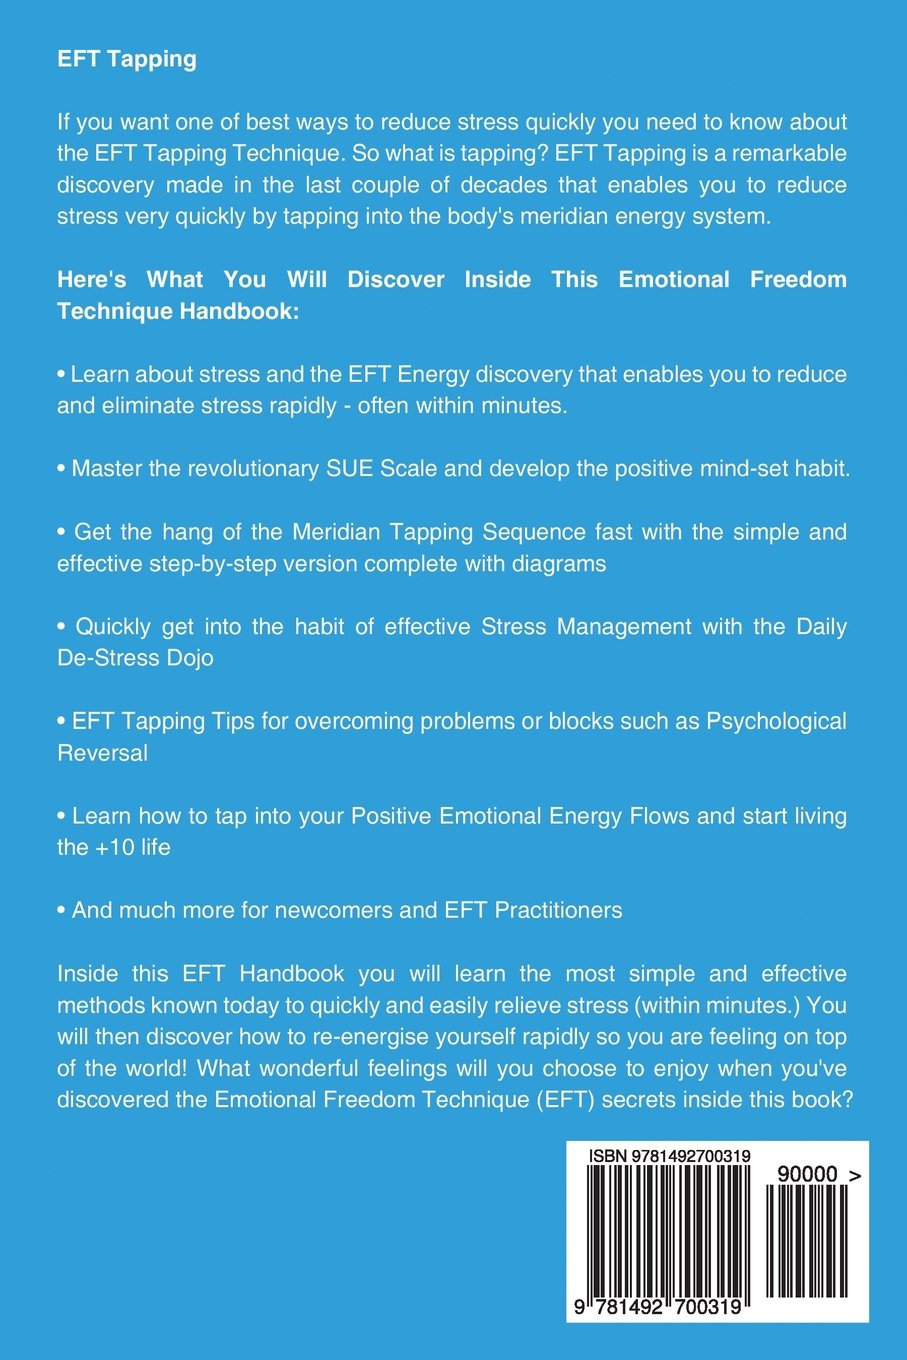 EFT Tapping: How To Relieve Stress And Re-Energise Rapidly